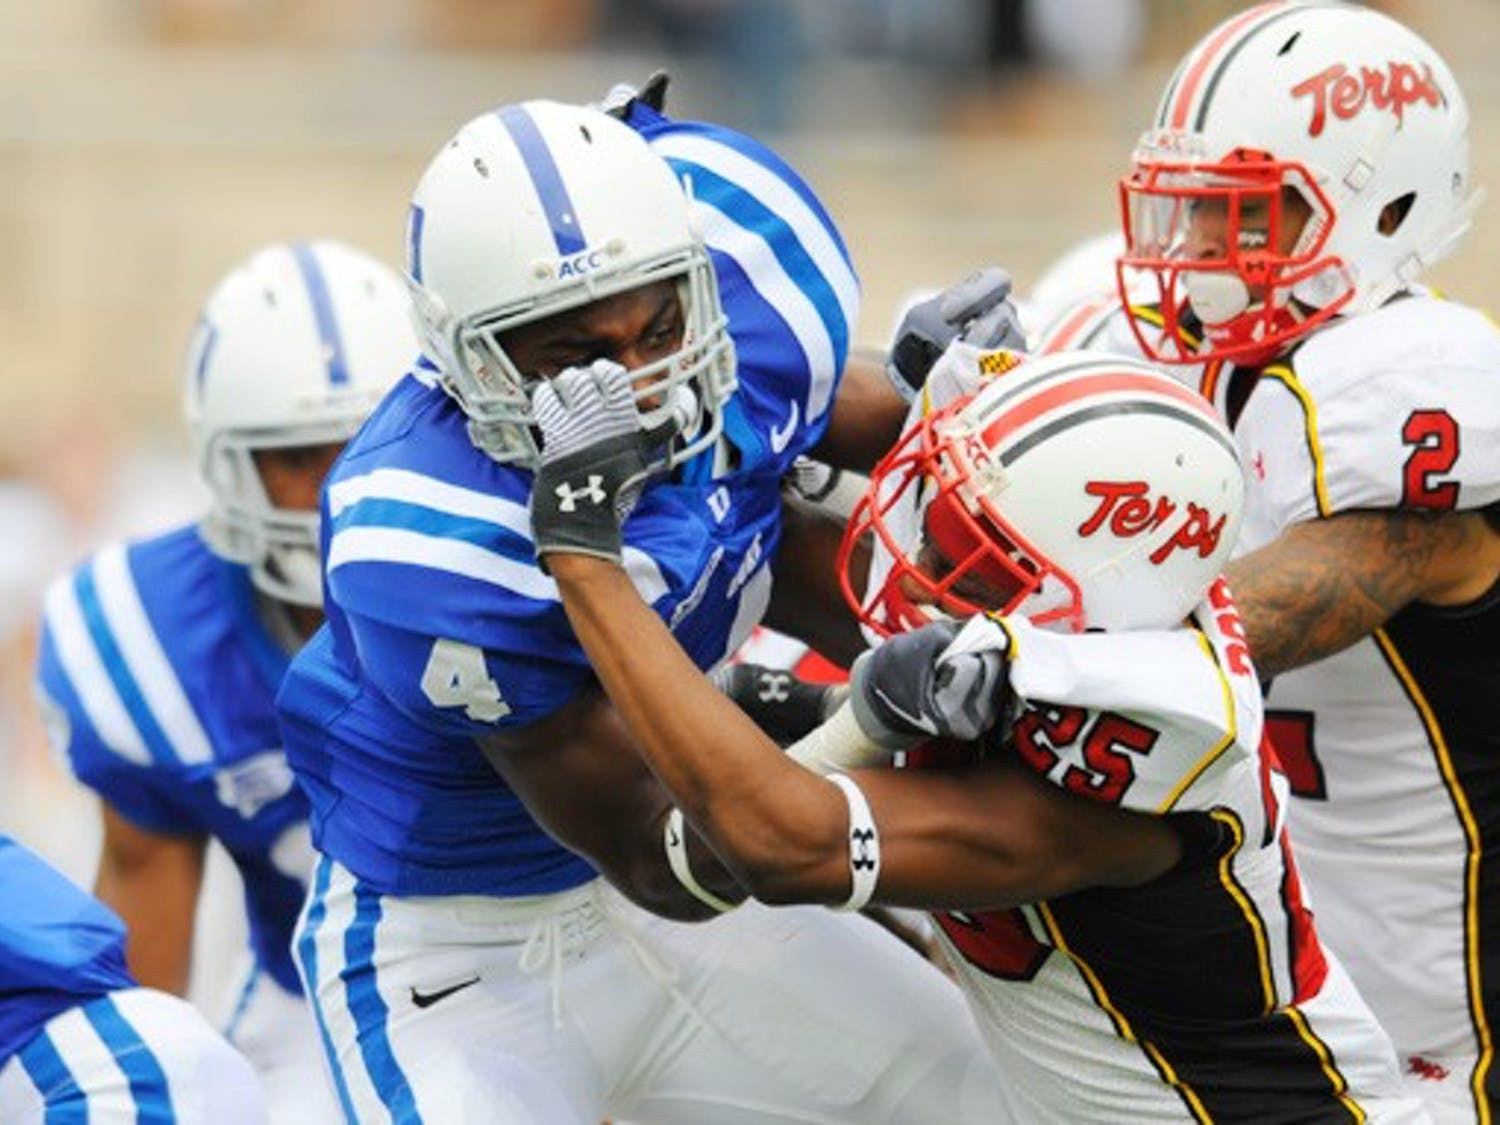 The Blue Devils will face a potent rushing attack and a stingy red zone defense when they travel to Maryland.